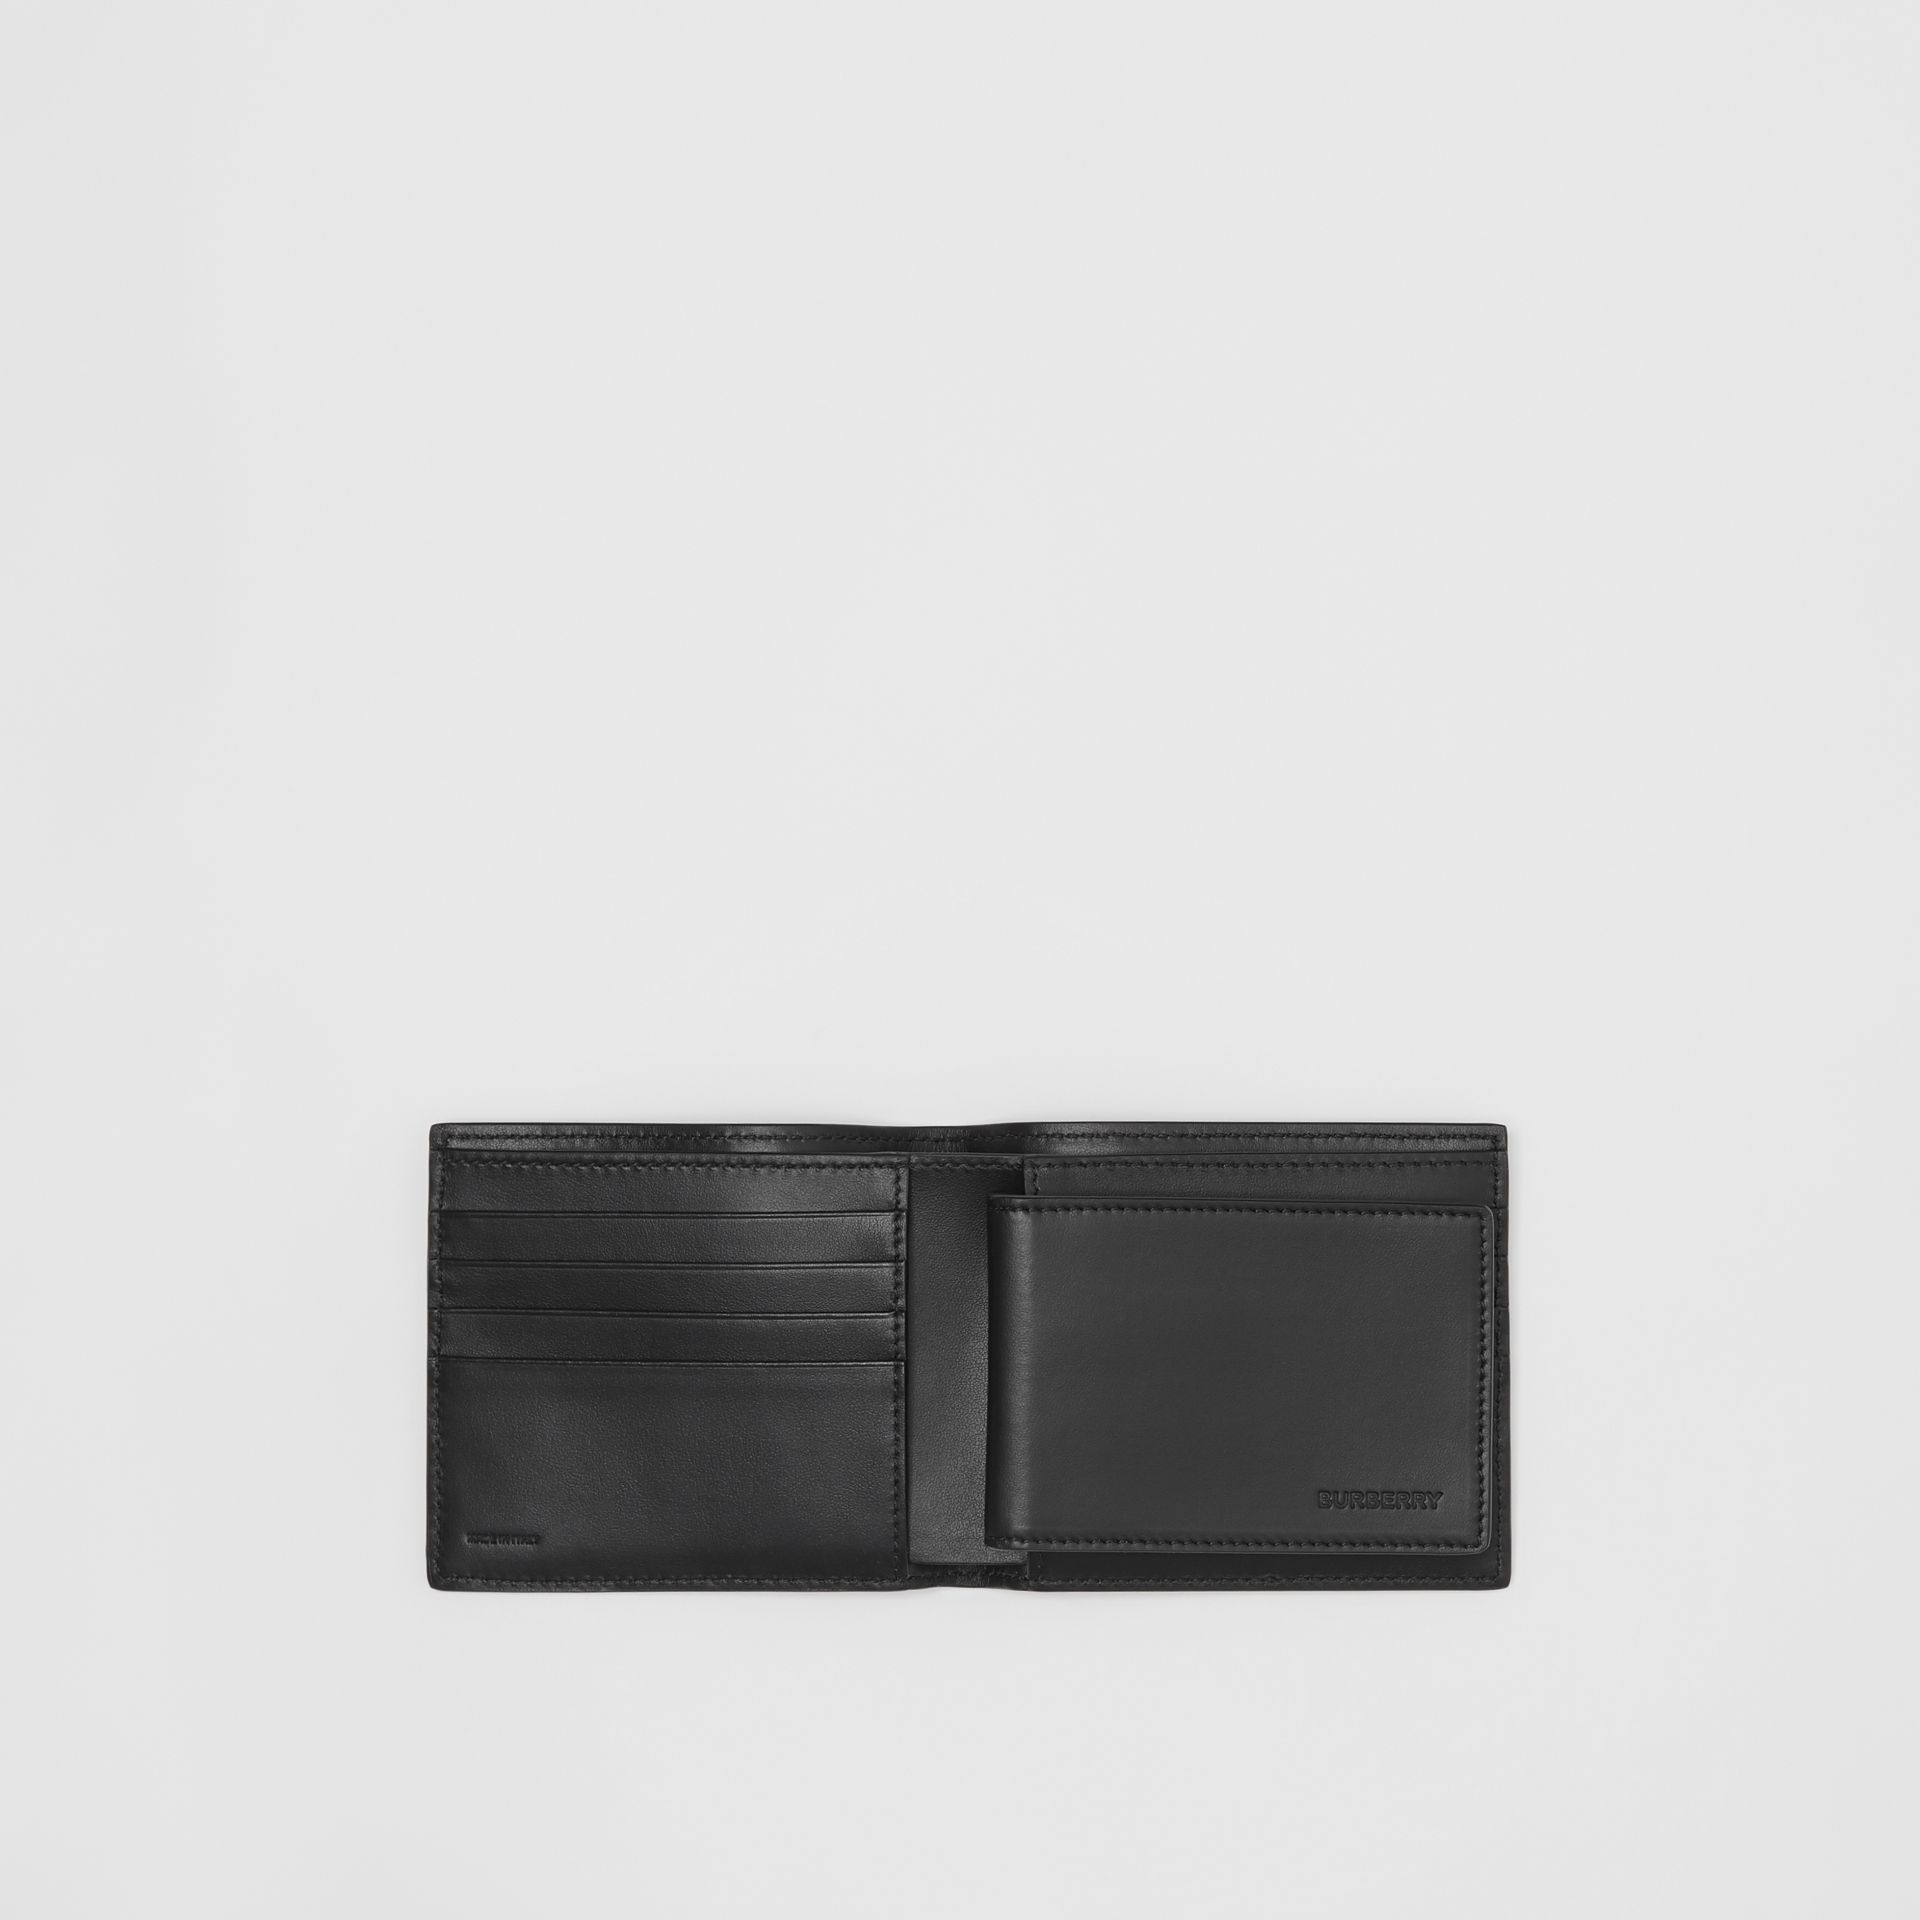 Monogram Leather Bifold Wallet with ID Card Case in Black - Men | Burberry Canada - gallery image 2